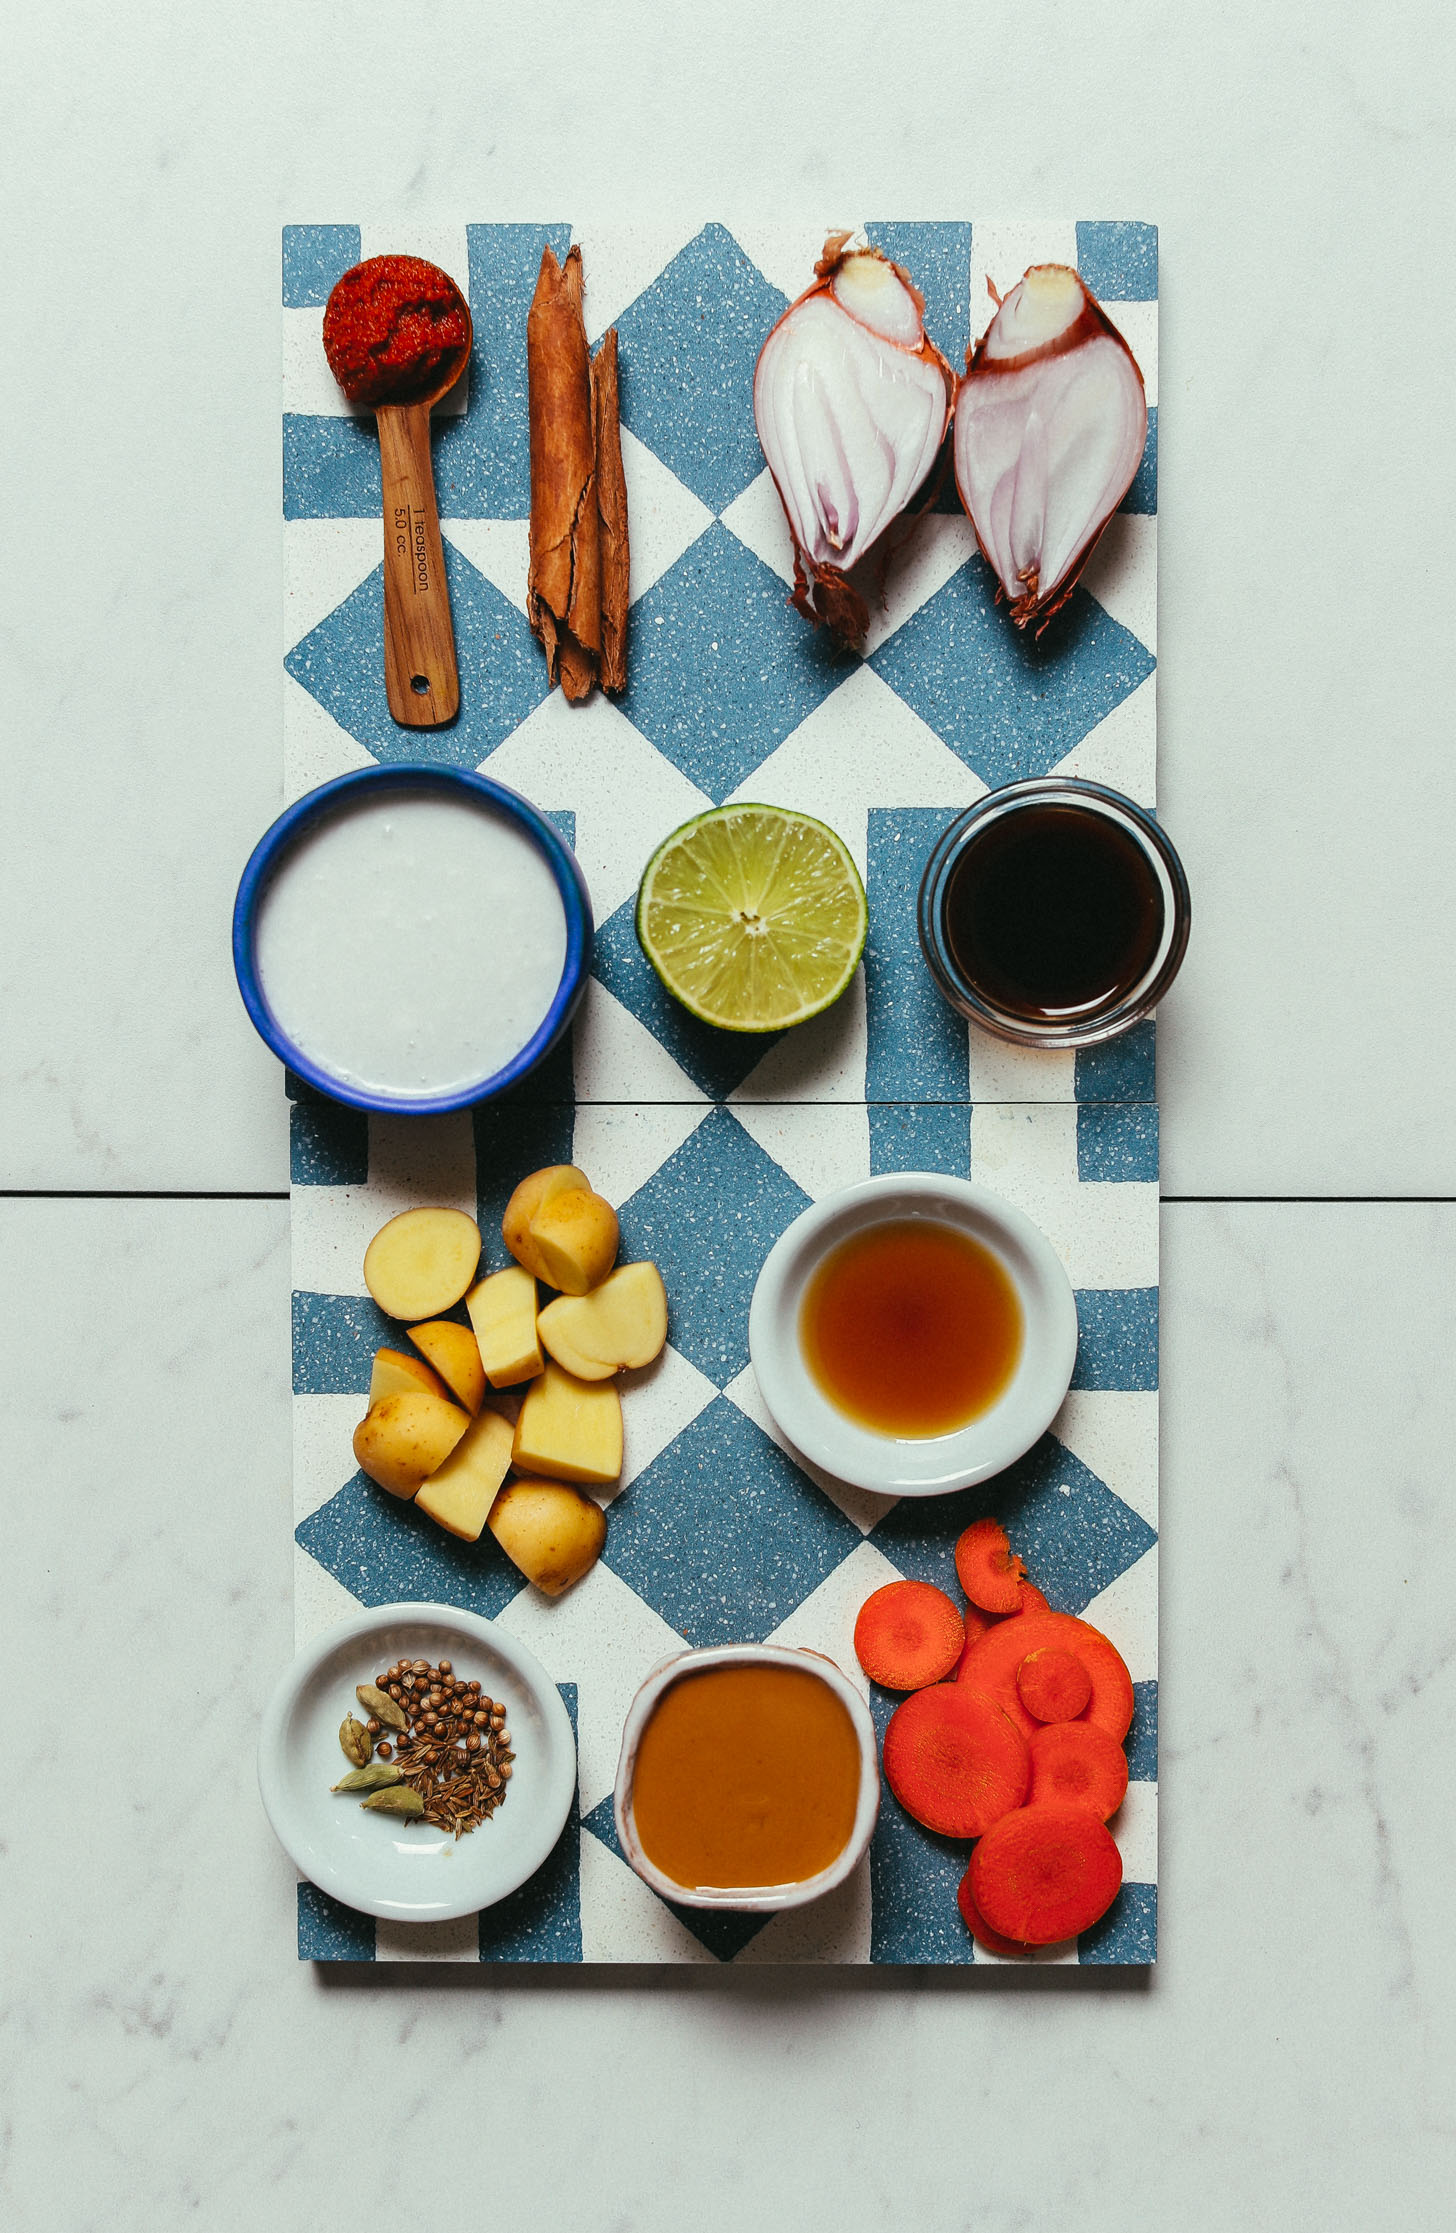 Tiles with ingredients for making our homemade vegan Massaman Curry recipe